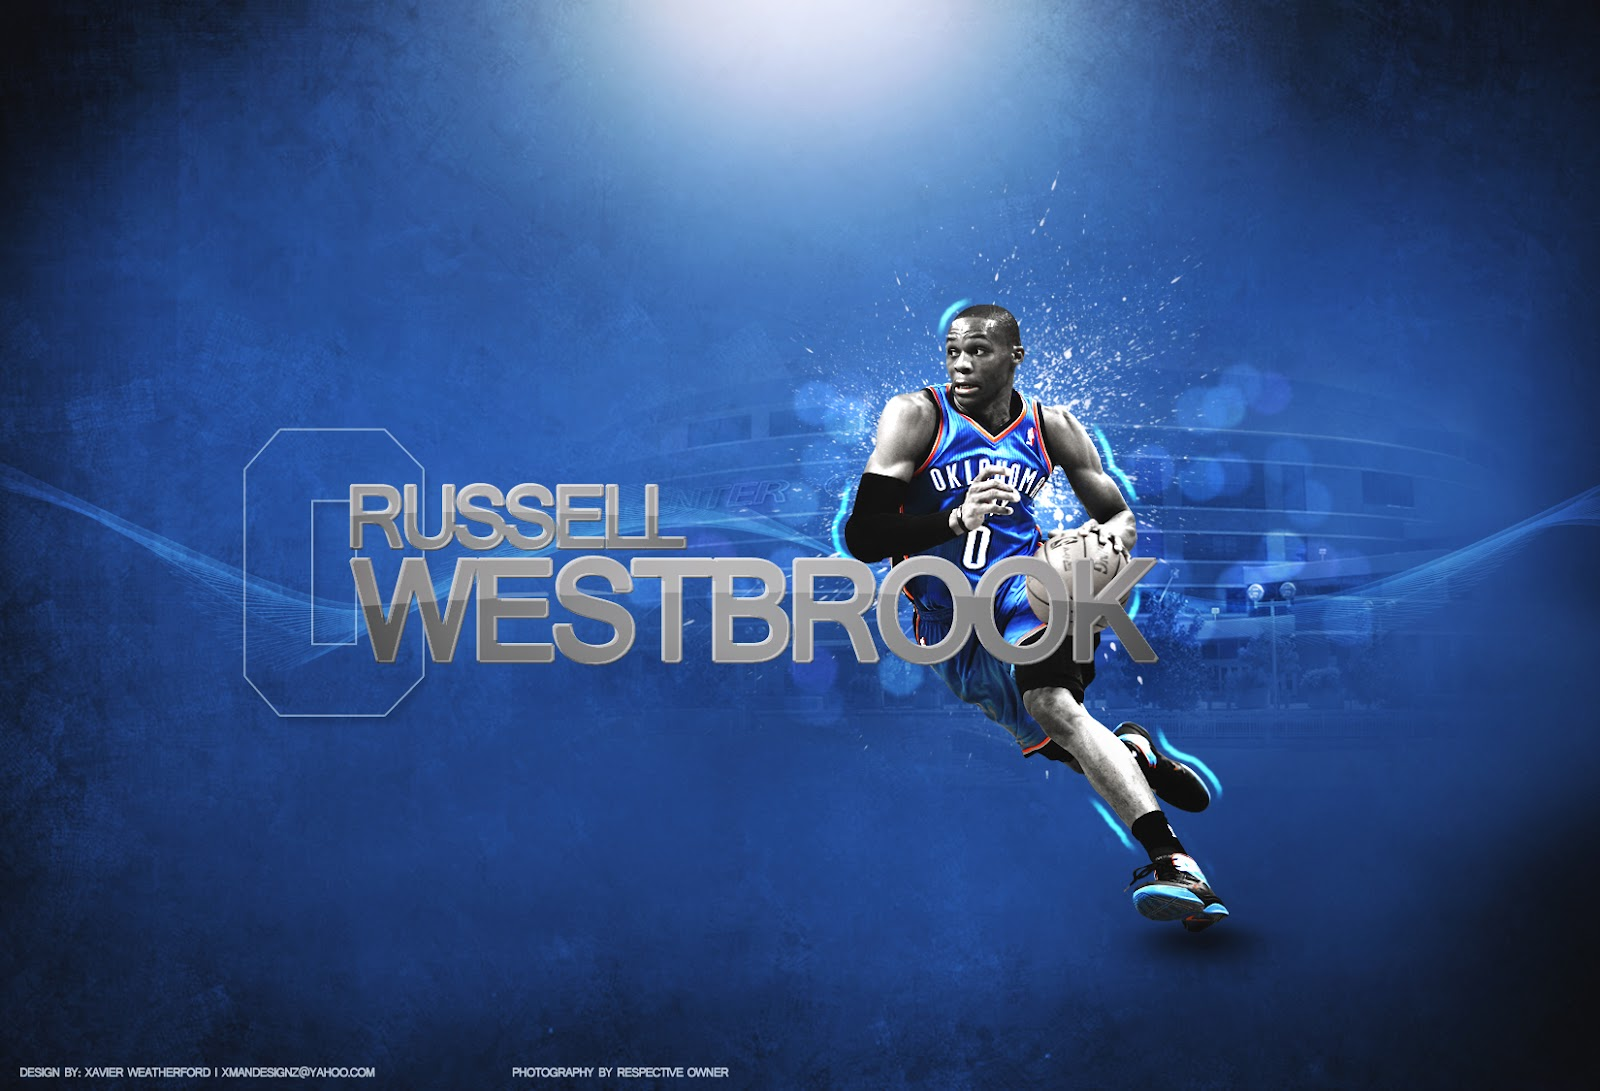 russell westbrook new hd wallpapers 2012 its all about lebron james logo meaning lebron james logo clothing